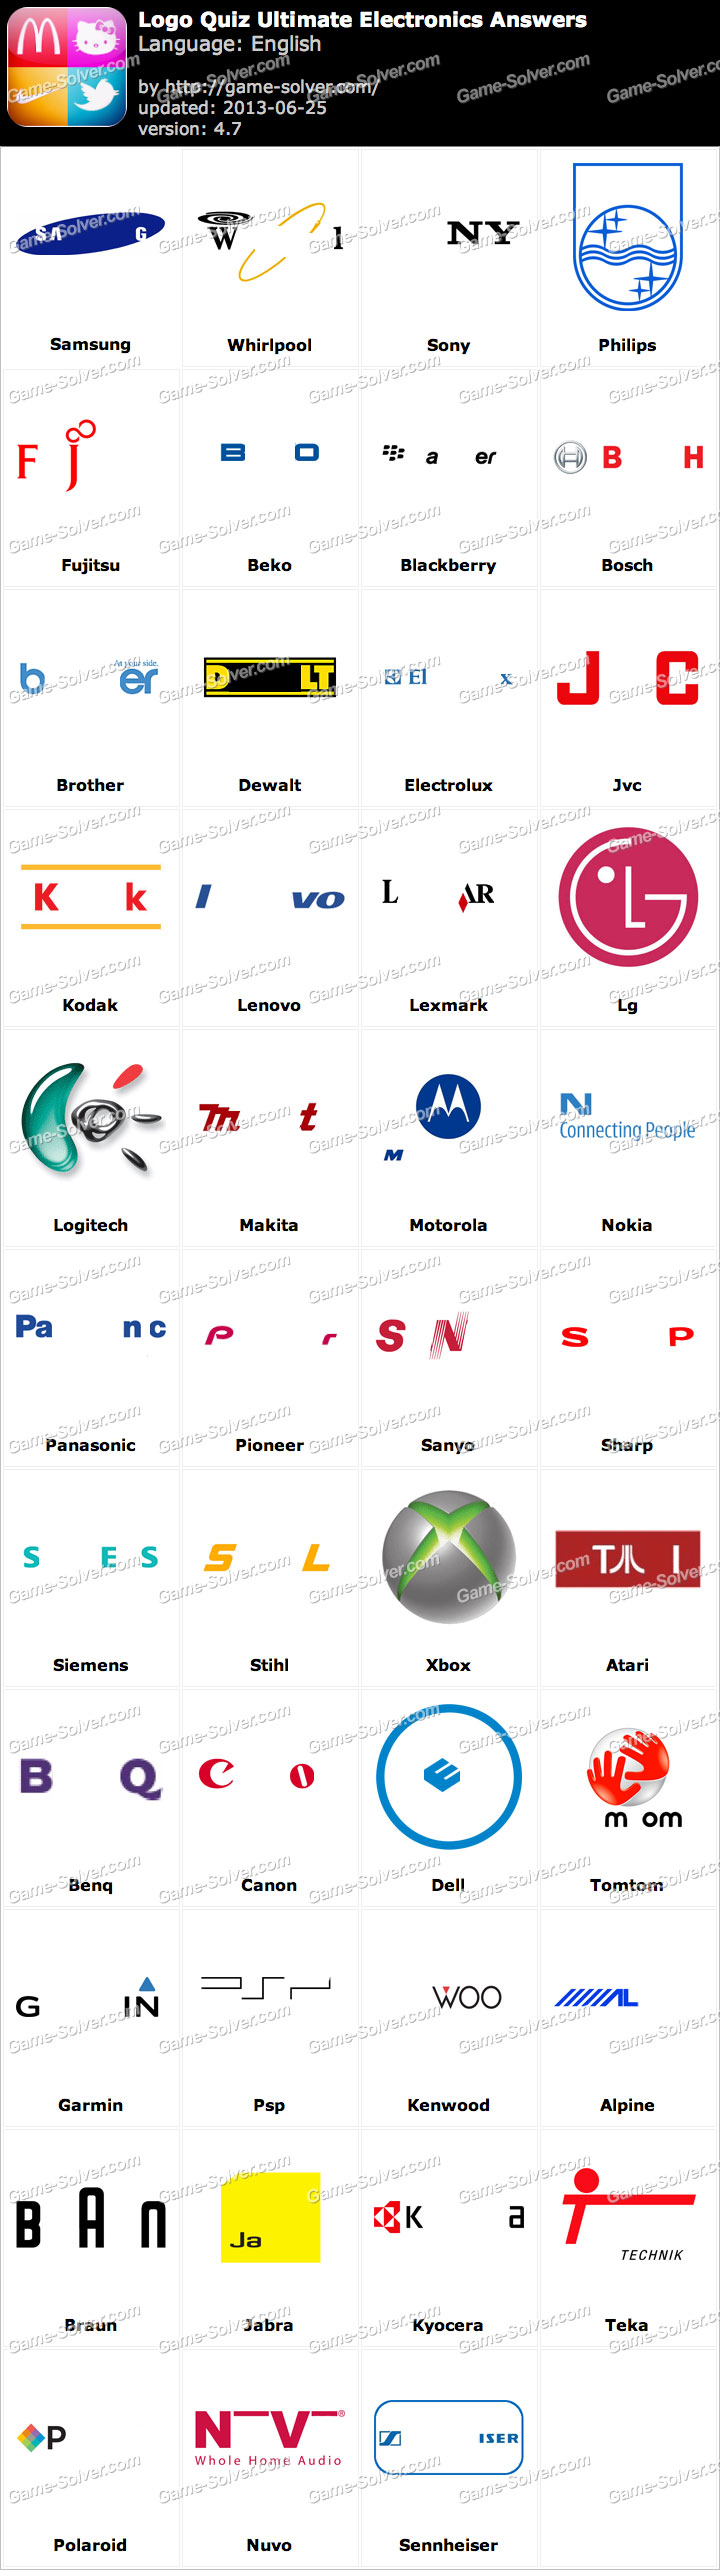 Company That Develops And Sells Computers And Related Products Logo Quiz